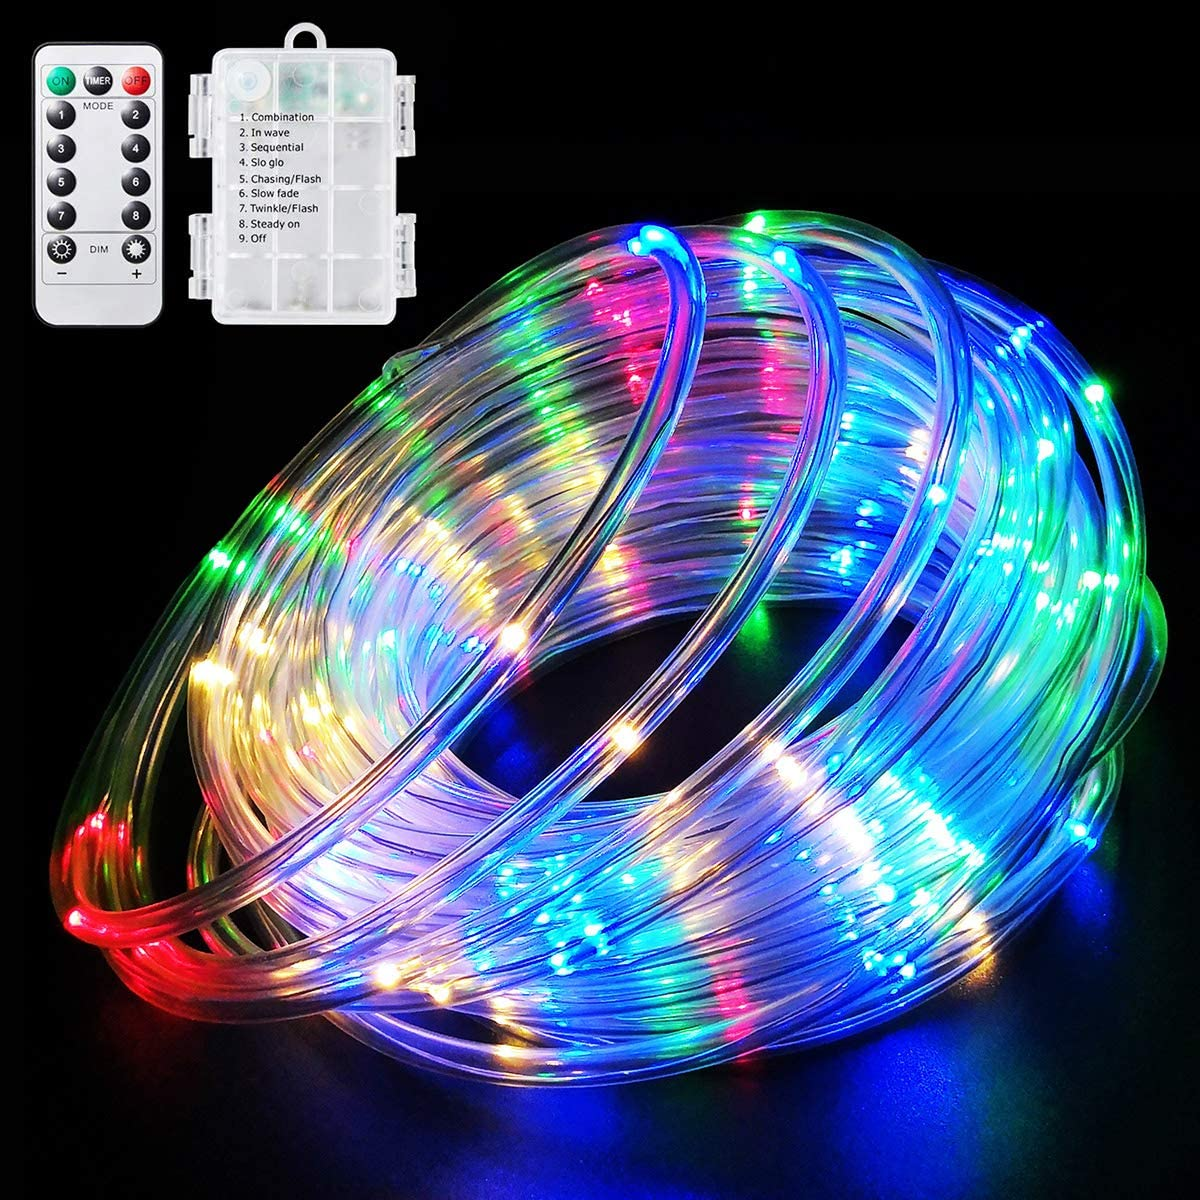 LED Rope Lights Battery Operated String Lights 40Ft 120 LEDs 8 Modes Outdoor Waterproof Fairy Lights Dimmable/Timer with Remote for Camping Party Garden Holiday Decoration Multi-Color